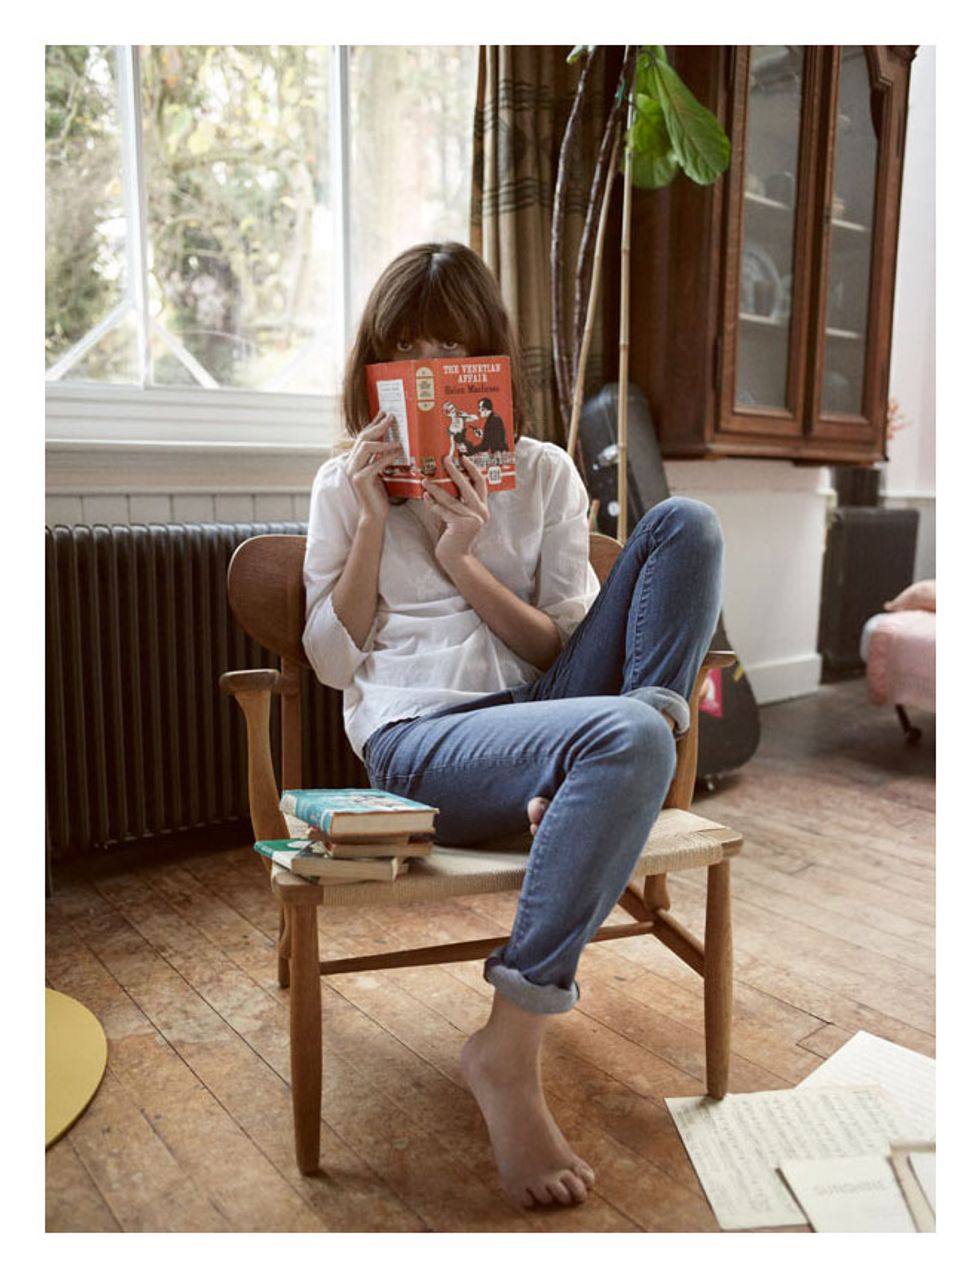 Irina Lazareanu, Alex James and a Cute Black Cat in Aubin & Wills' Spring Campaign